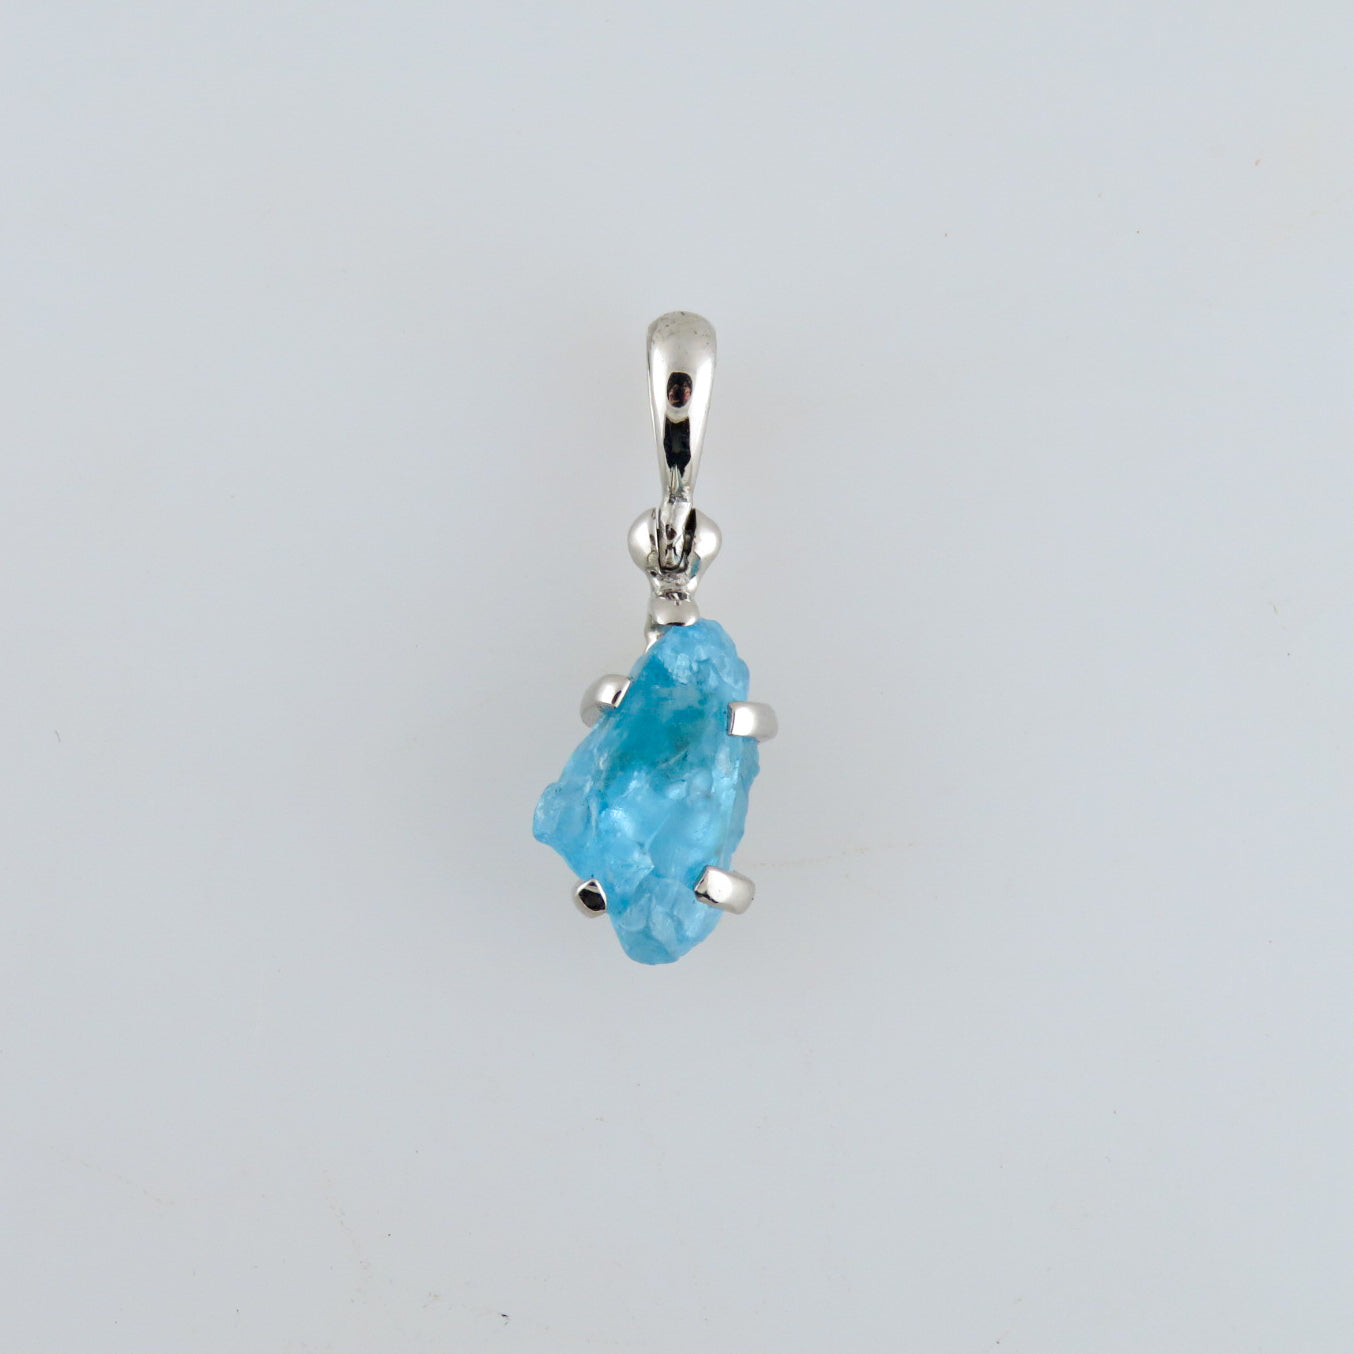 Blue Apatite Pendant with Sterling Silver